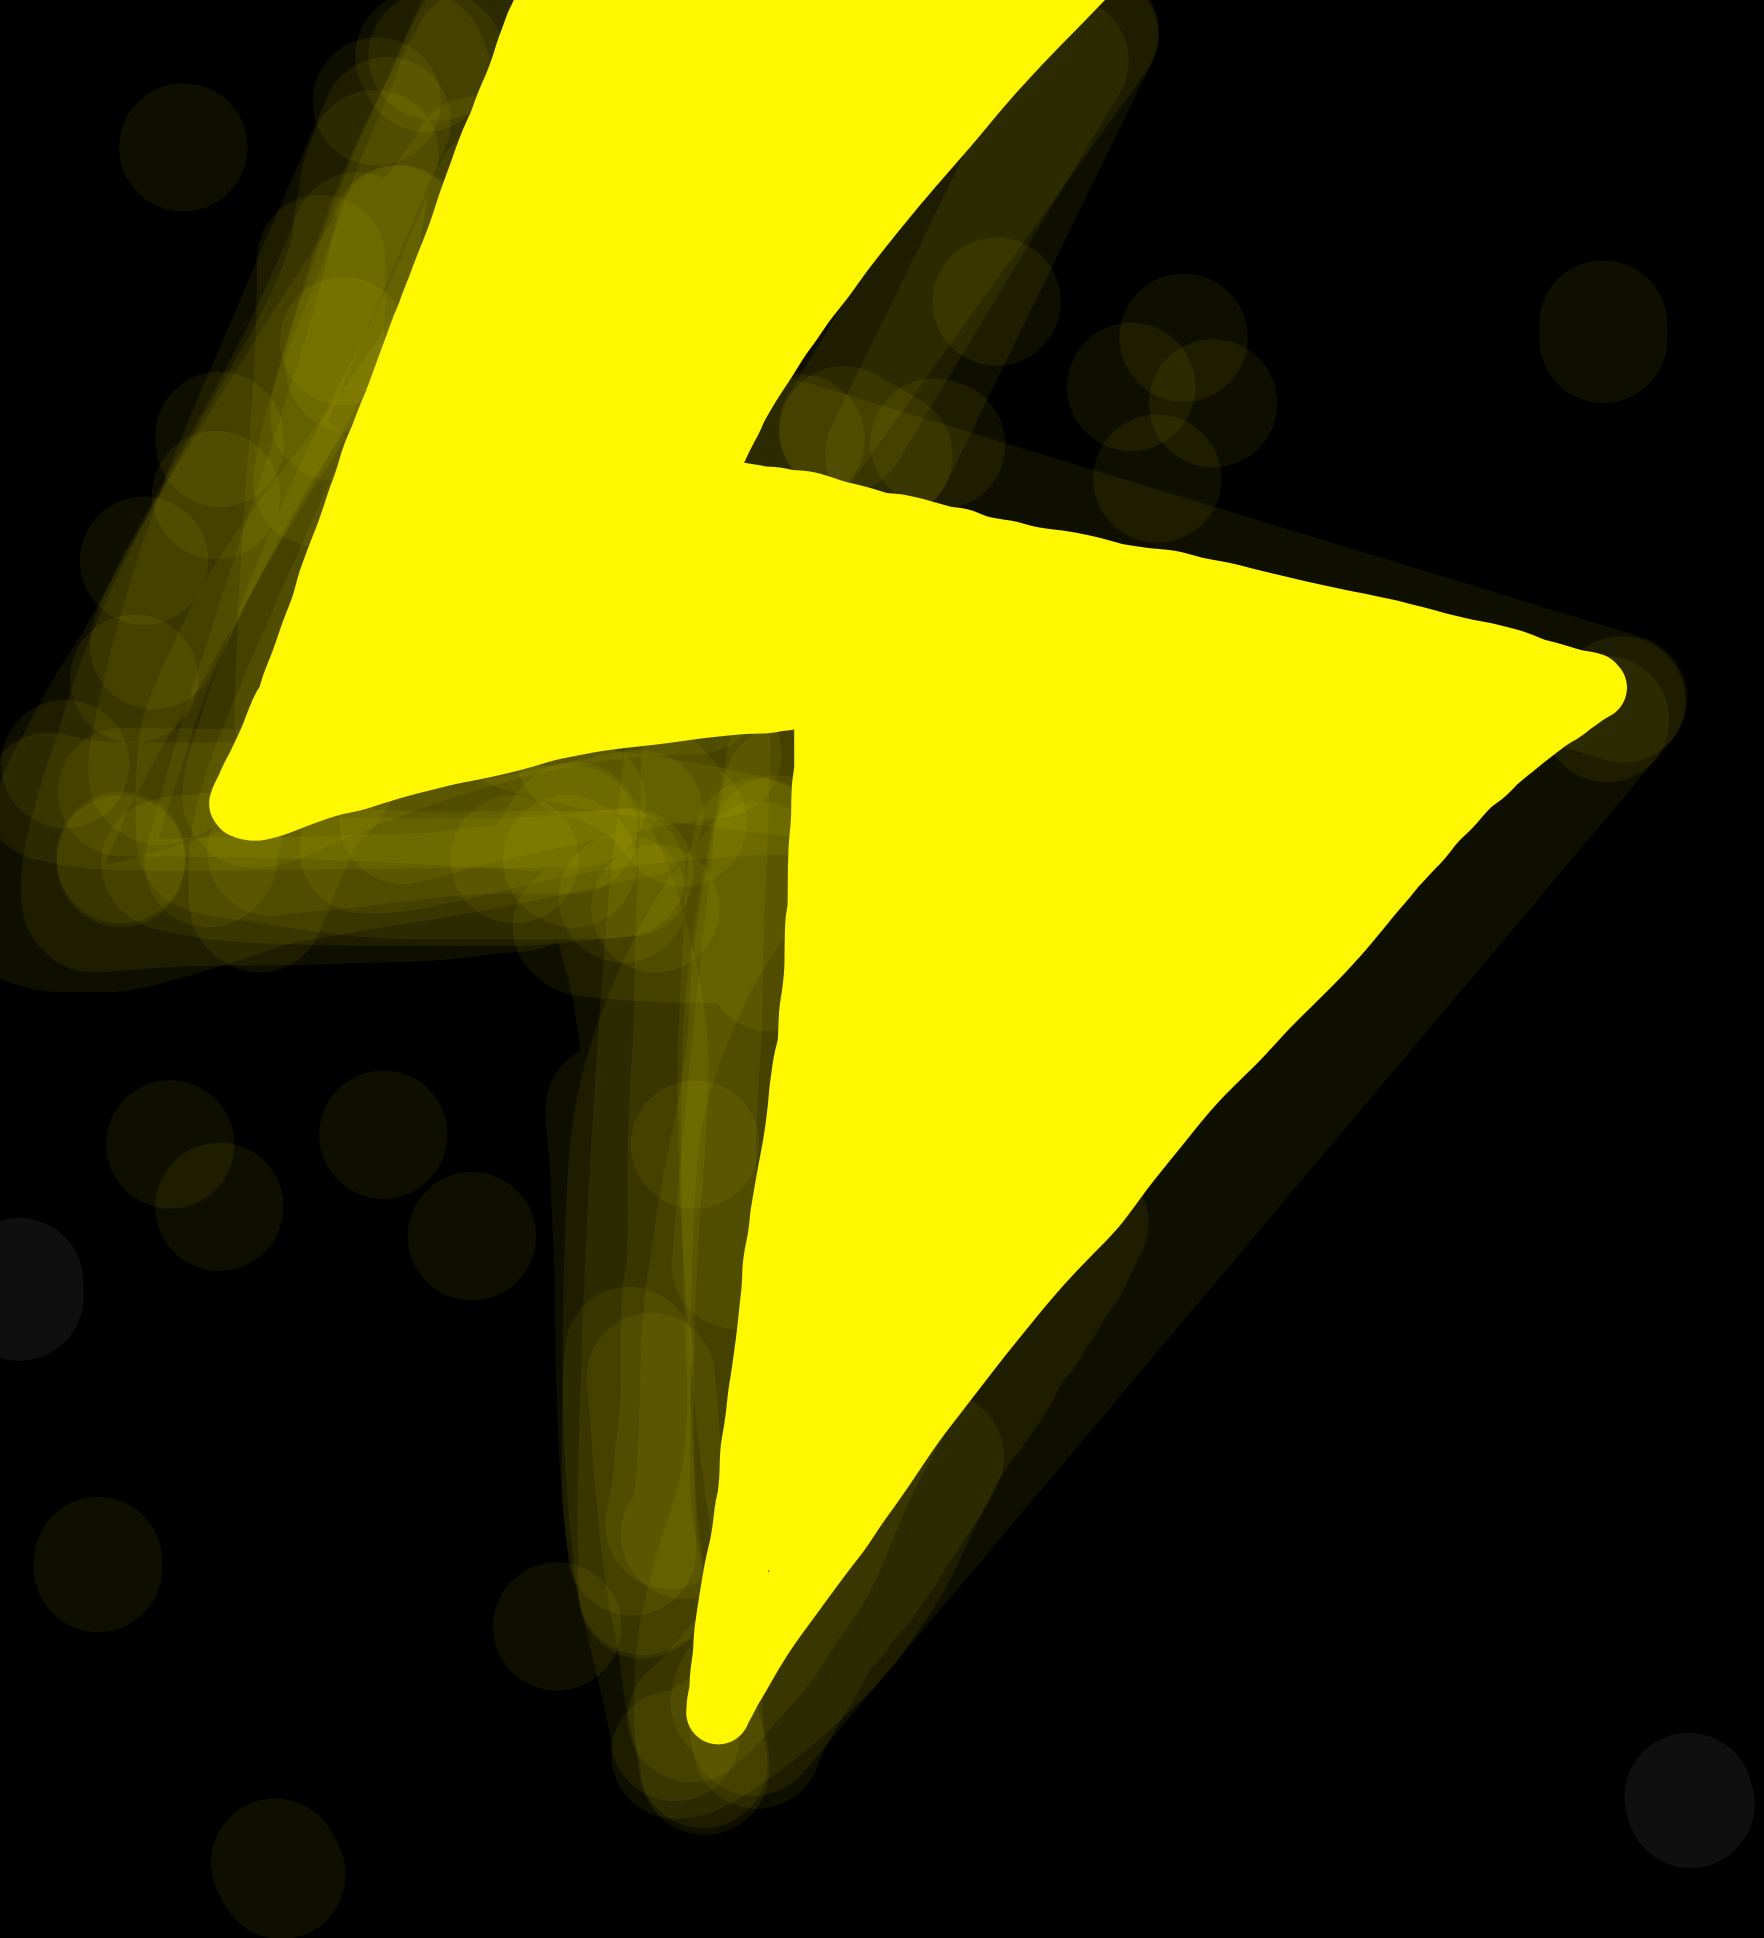 Lightning Bolt Backgrounds - WallpaperSafari